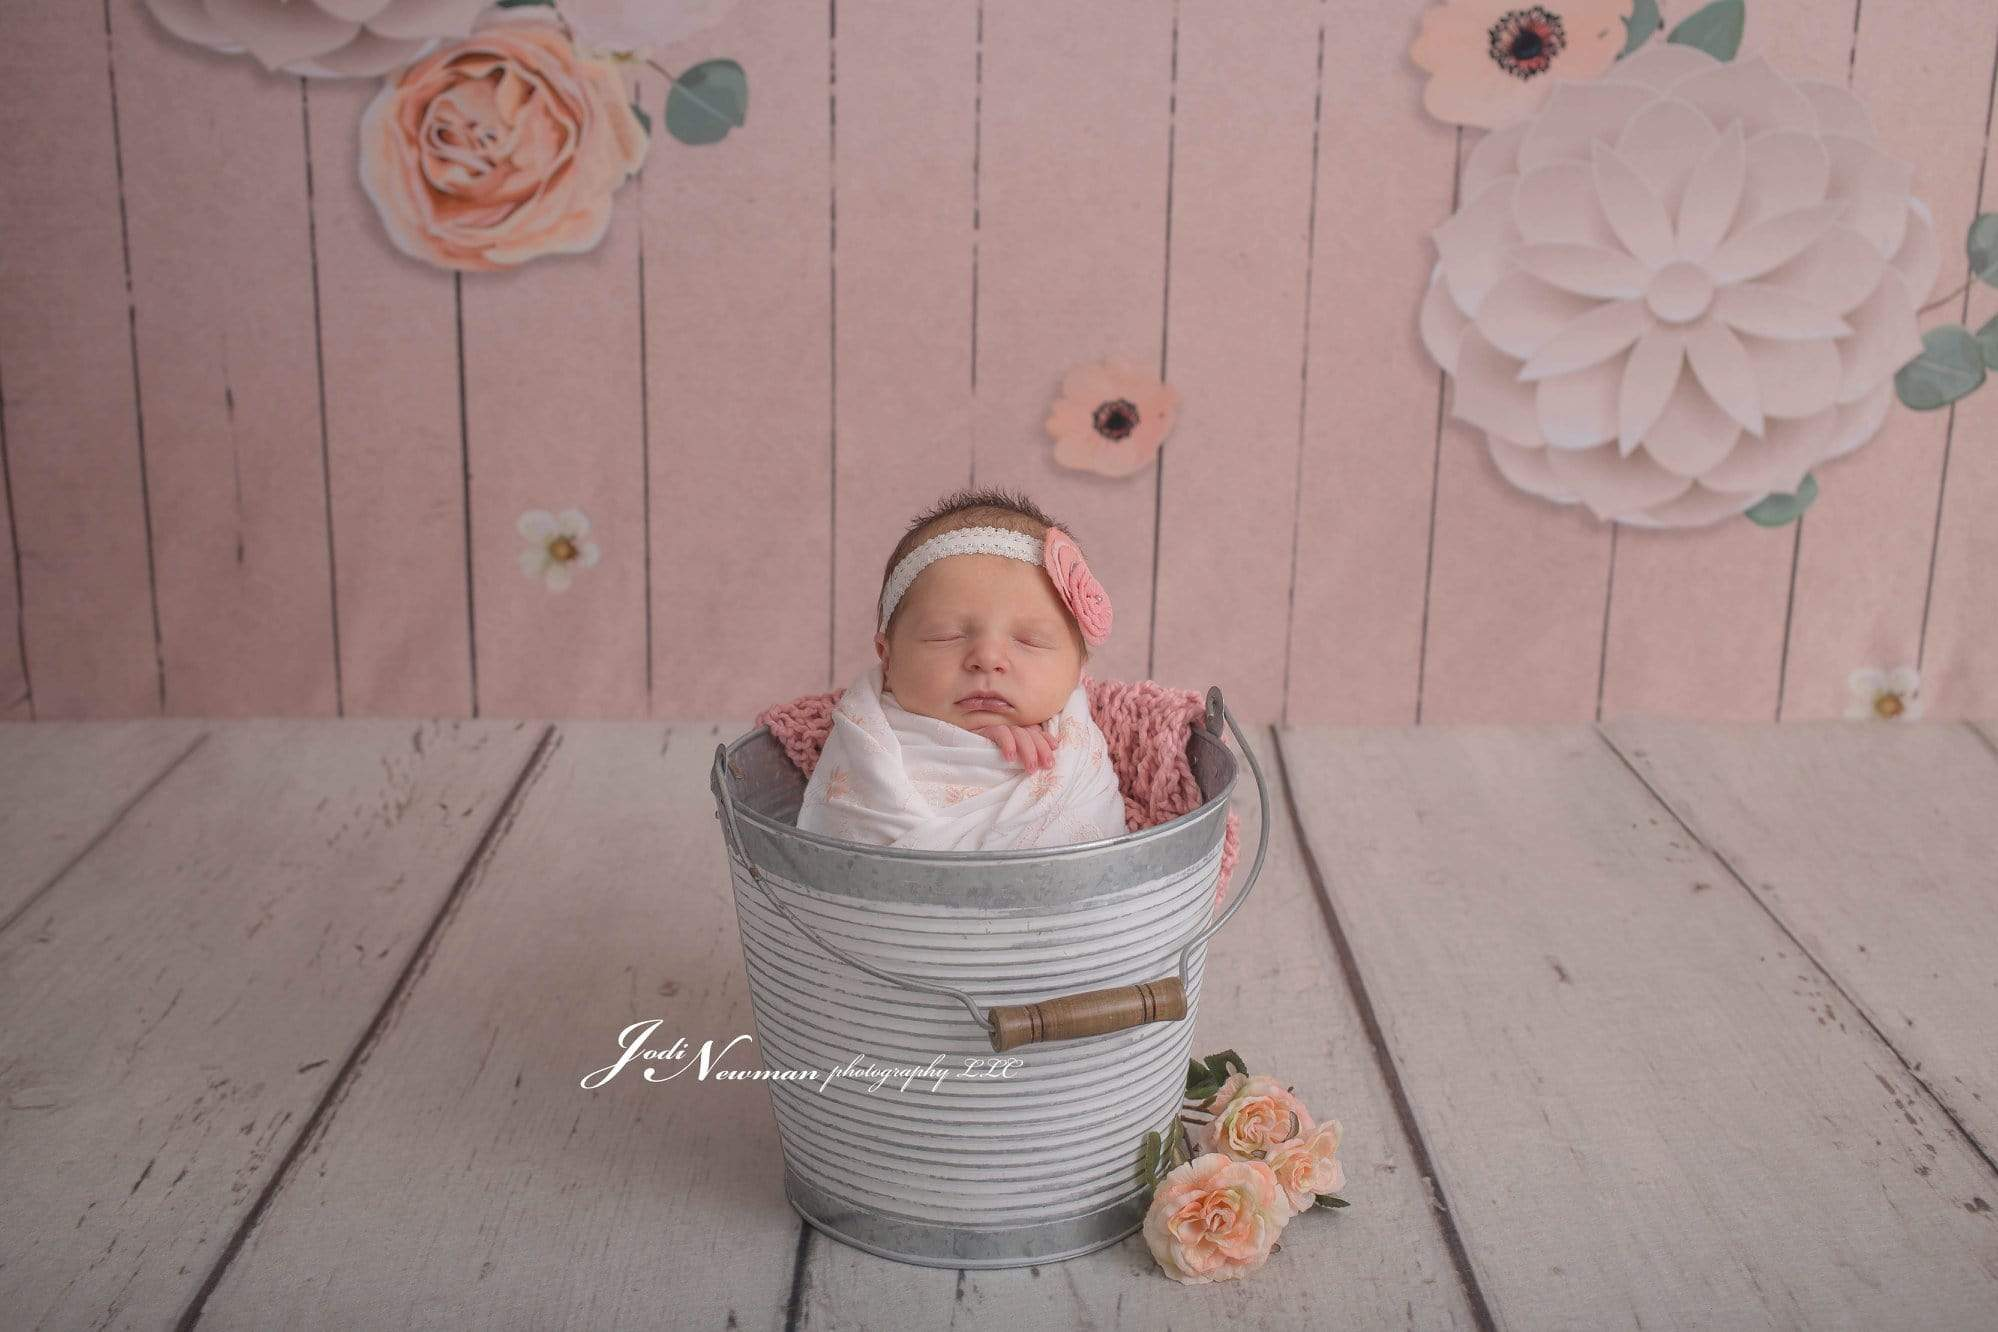 Load image into Gallery viewer, Katebackdrop:Kate Beige Wood Floor and Flowers Backdrop for Photography designed by Jerry_Sina